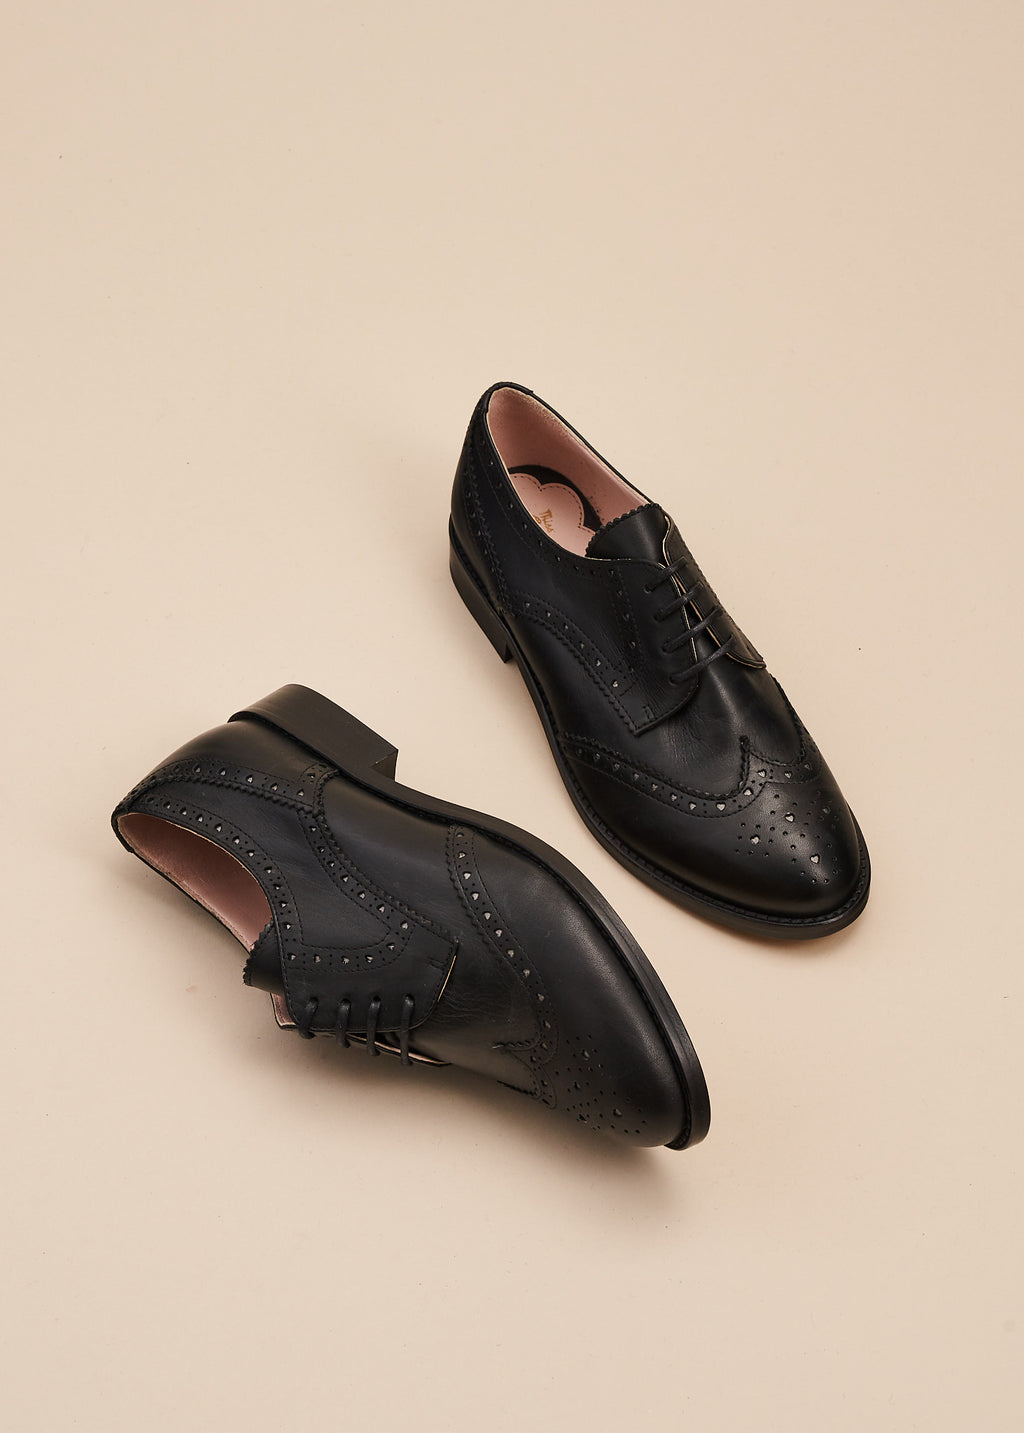 Audrey in black leather is the perfect at home, or at work lace up vintage inspired brogue shoe  with 2.5cm heel. Audrey features tiny heart-shaped cut outs which add a feminine touch to a traditionally masculine style .  By Miss L Fire.